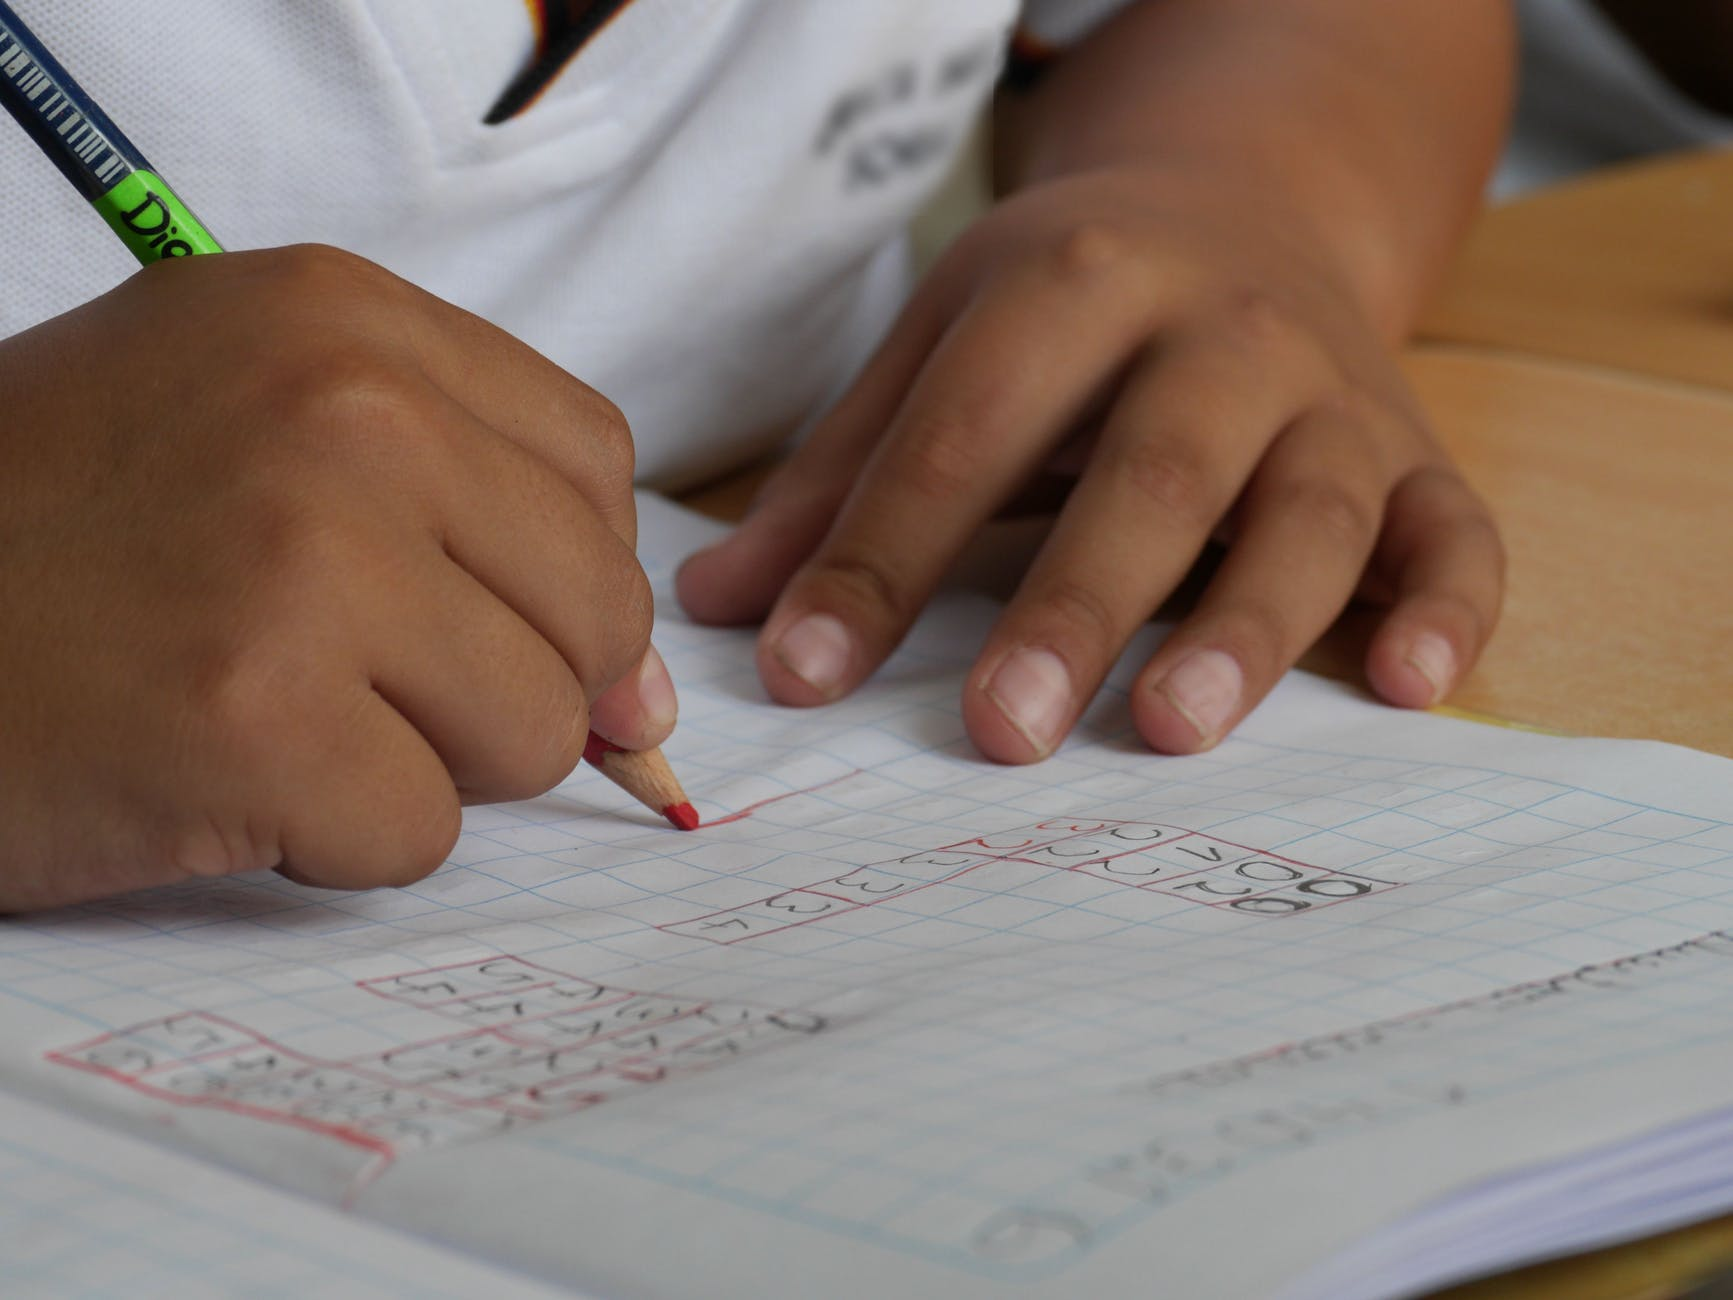 a child writing in a notebook with classroom supplies